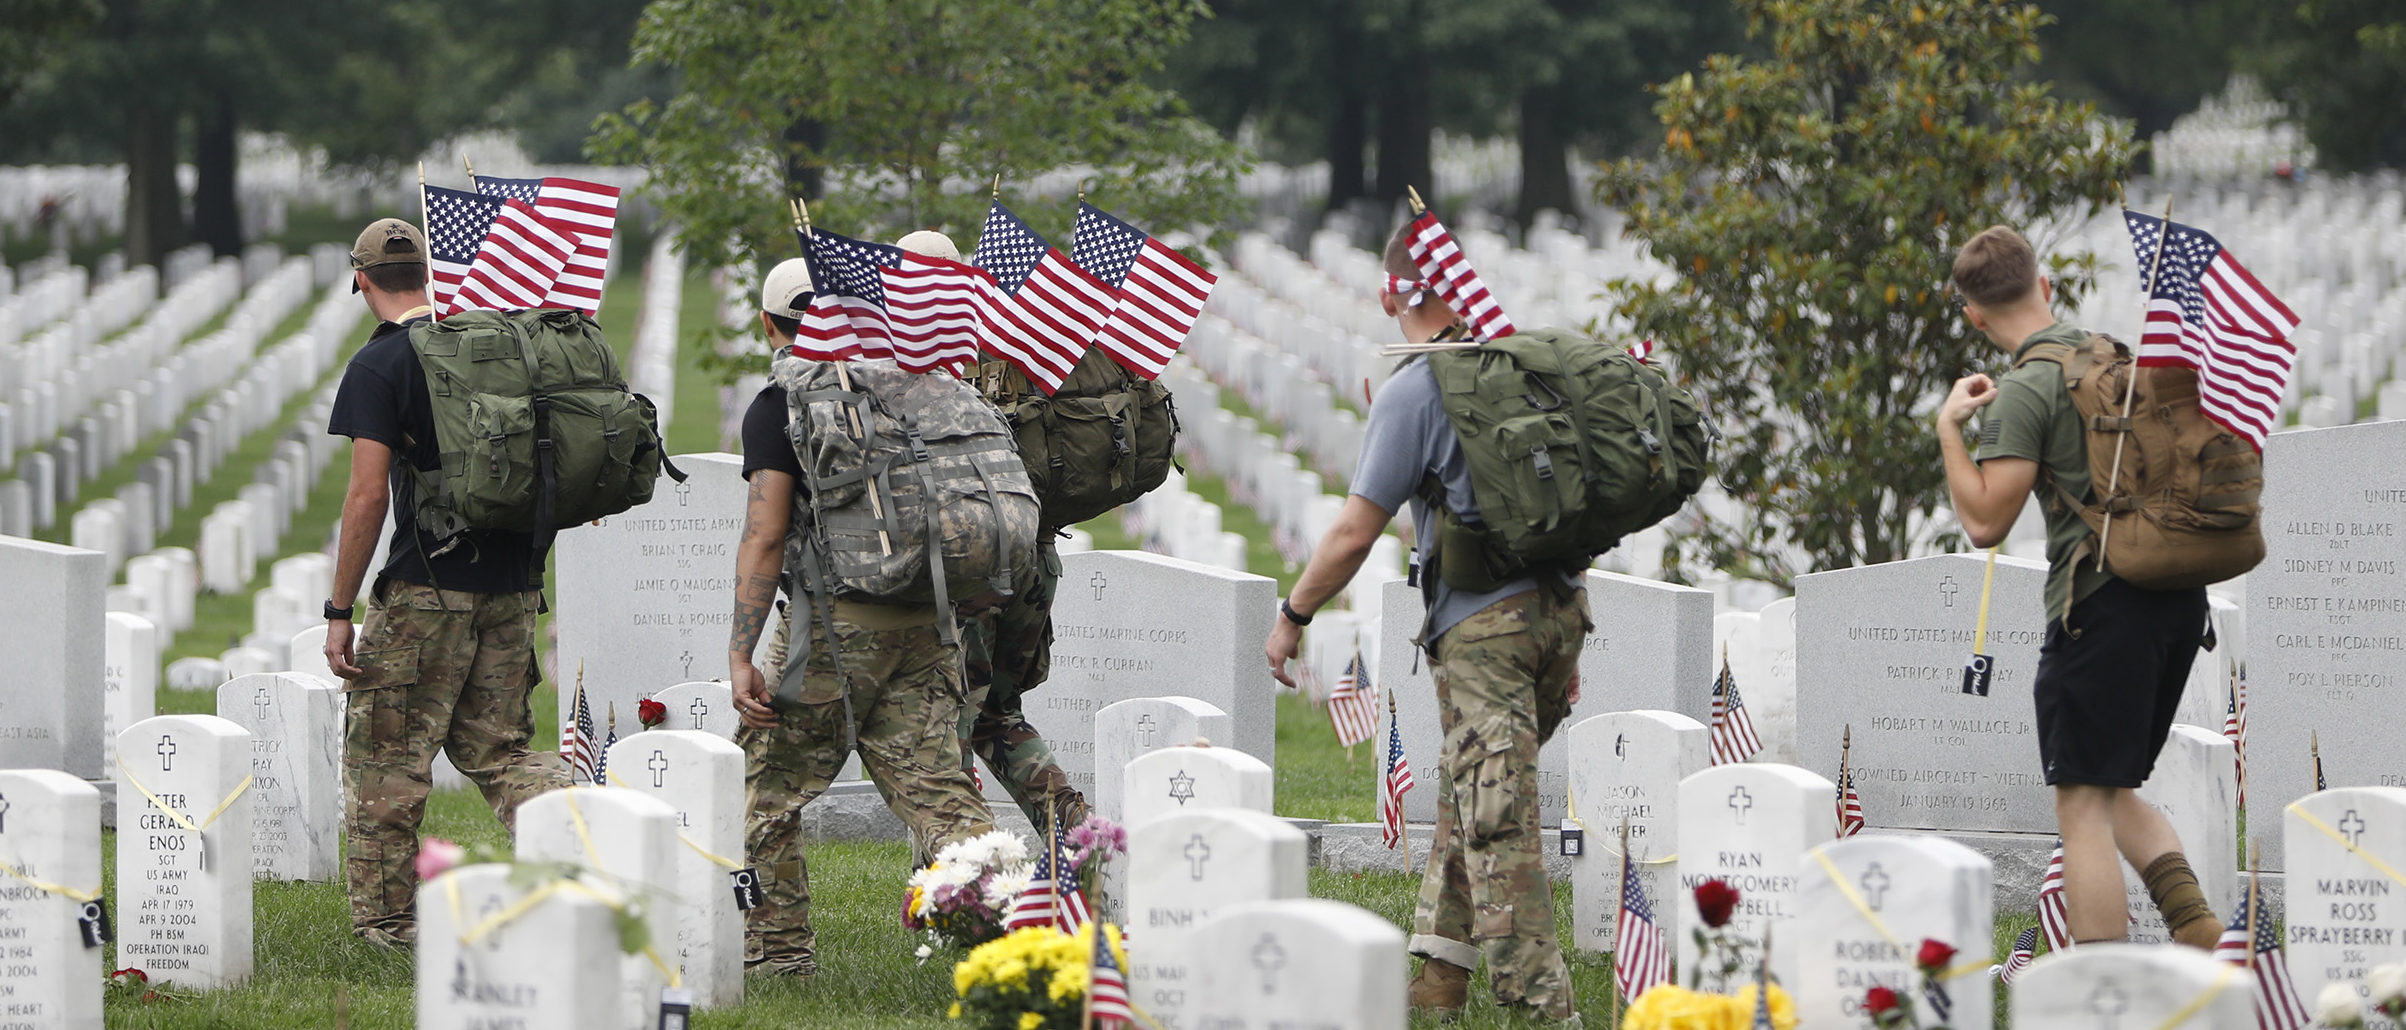 ARLINGTON, VA - MAY 29: Visitors walk amongst the gravestones at Arlington National Cemetery in Arlington, Virginia May 29, 2017. Thousands folk to the cemetery on Memorial Day to pay tribute to fallen service members. (Photo by Aaron P. Bernstein/Getty Images)